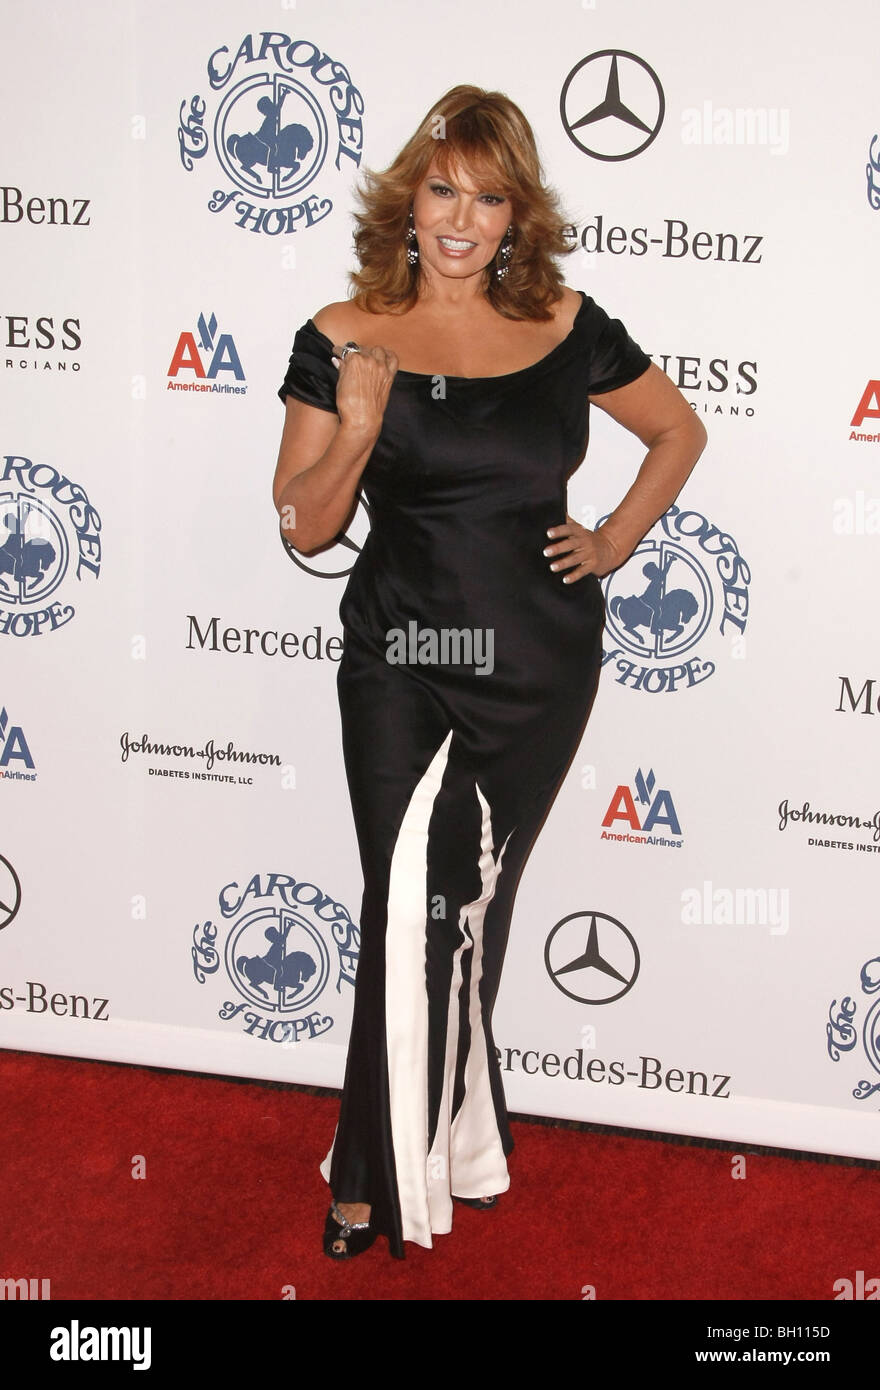 RAQUEL WELCH ACTRESS BEVERLY HILLS  CA  USA 25/10/2008 - Stock Image